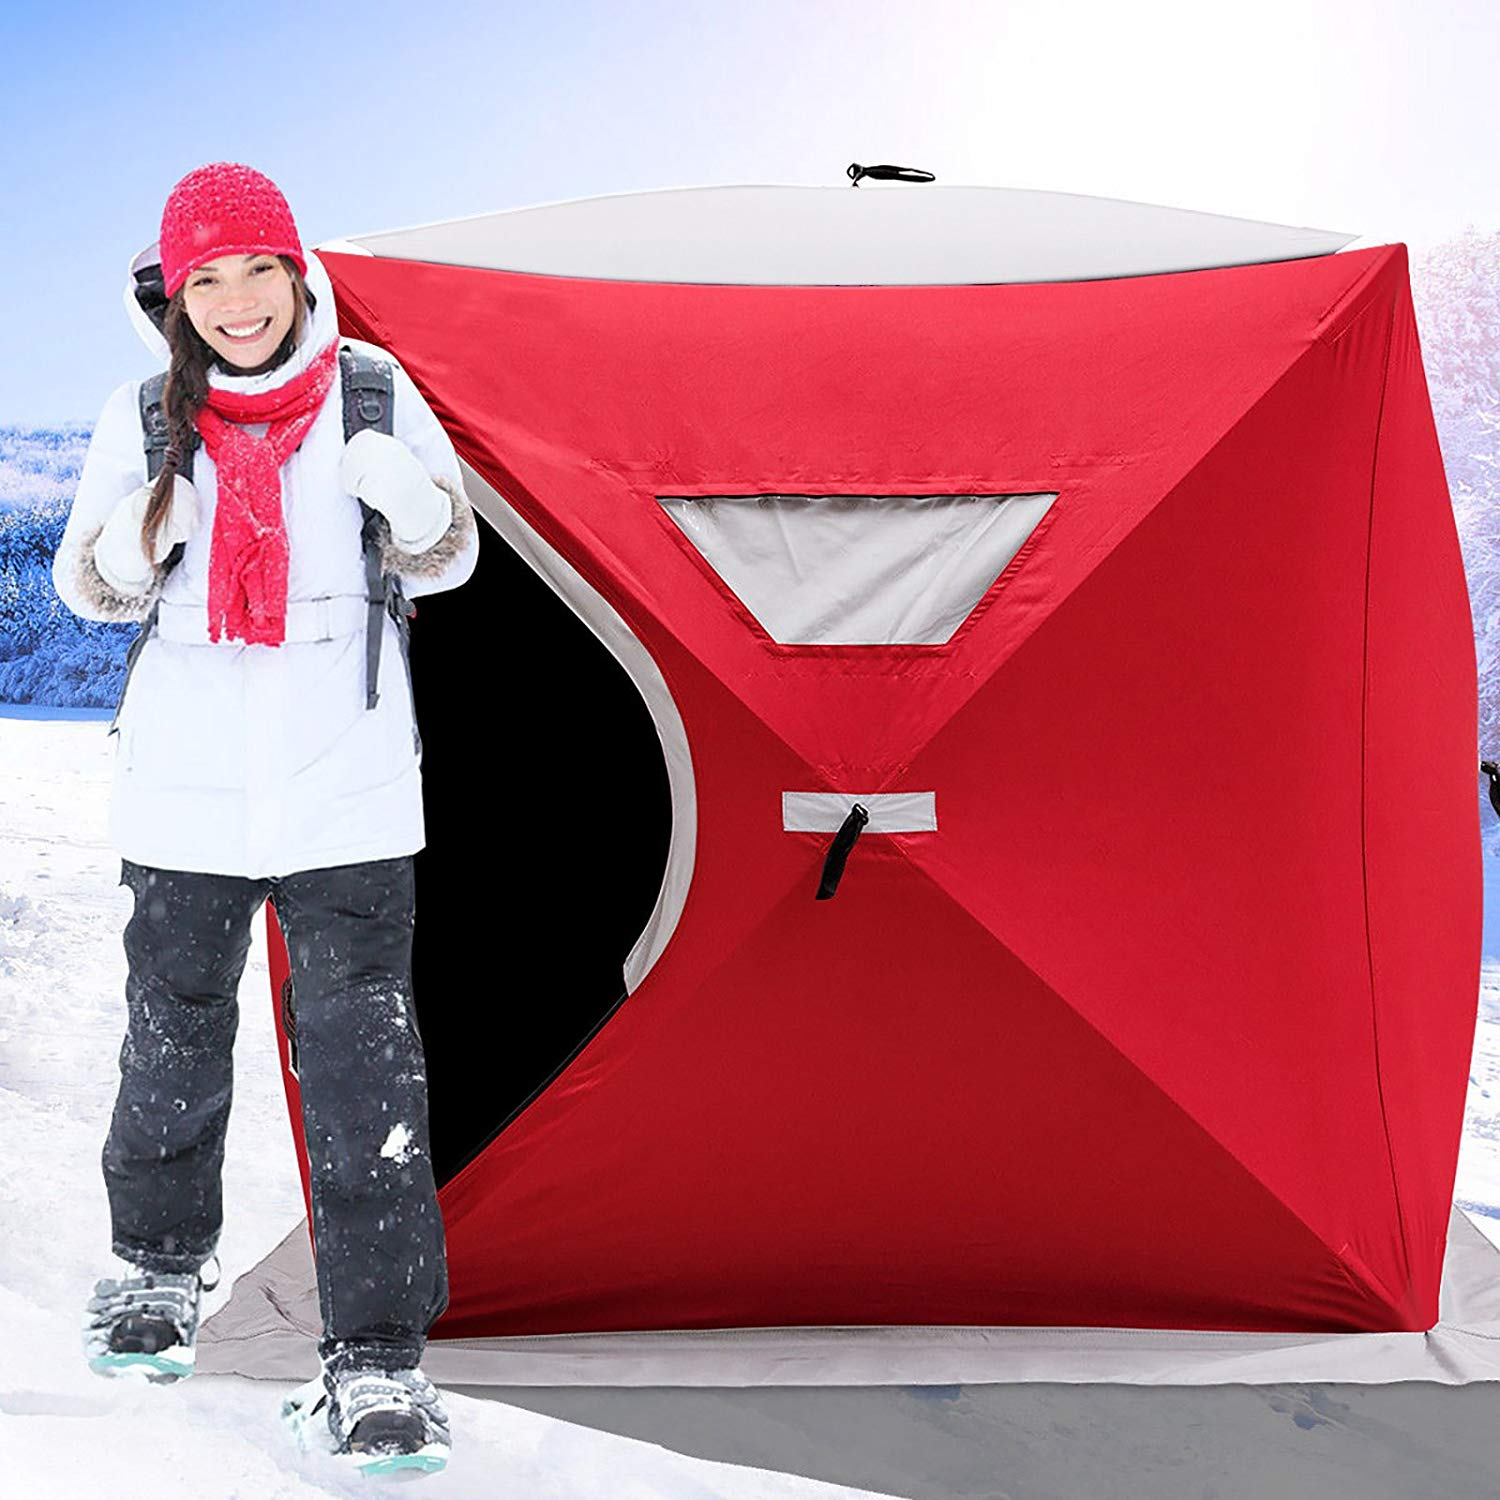 Cheap Shappell Windbreak Ice Fishing Shelter, find Shappell